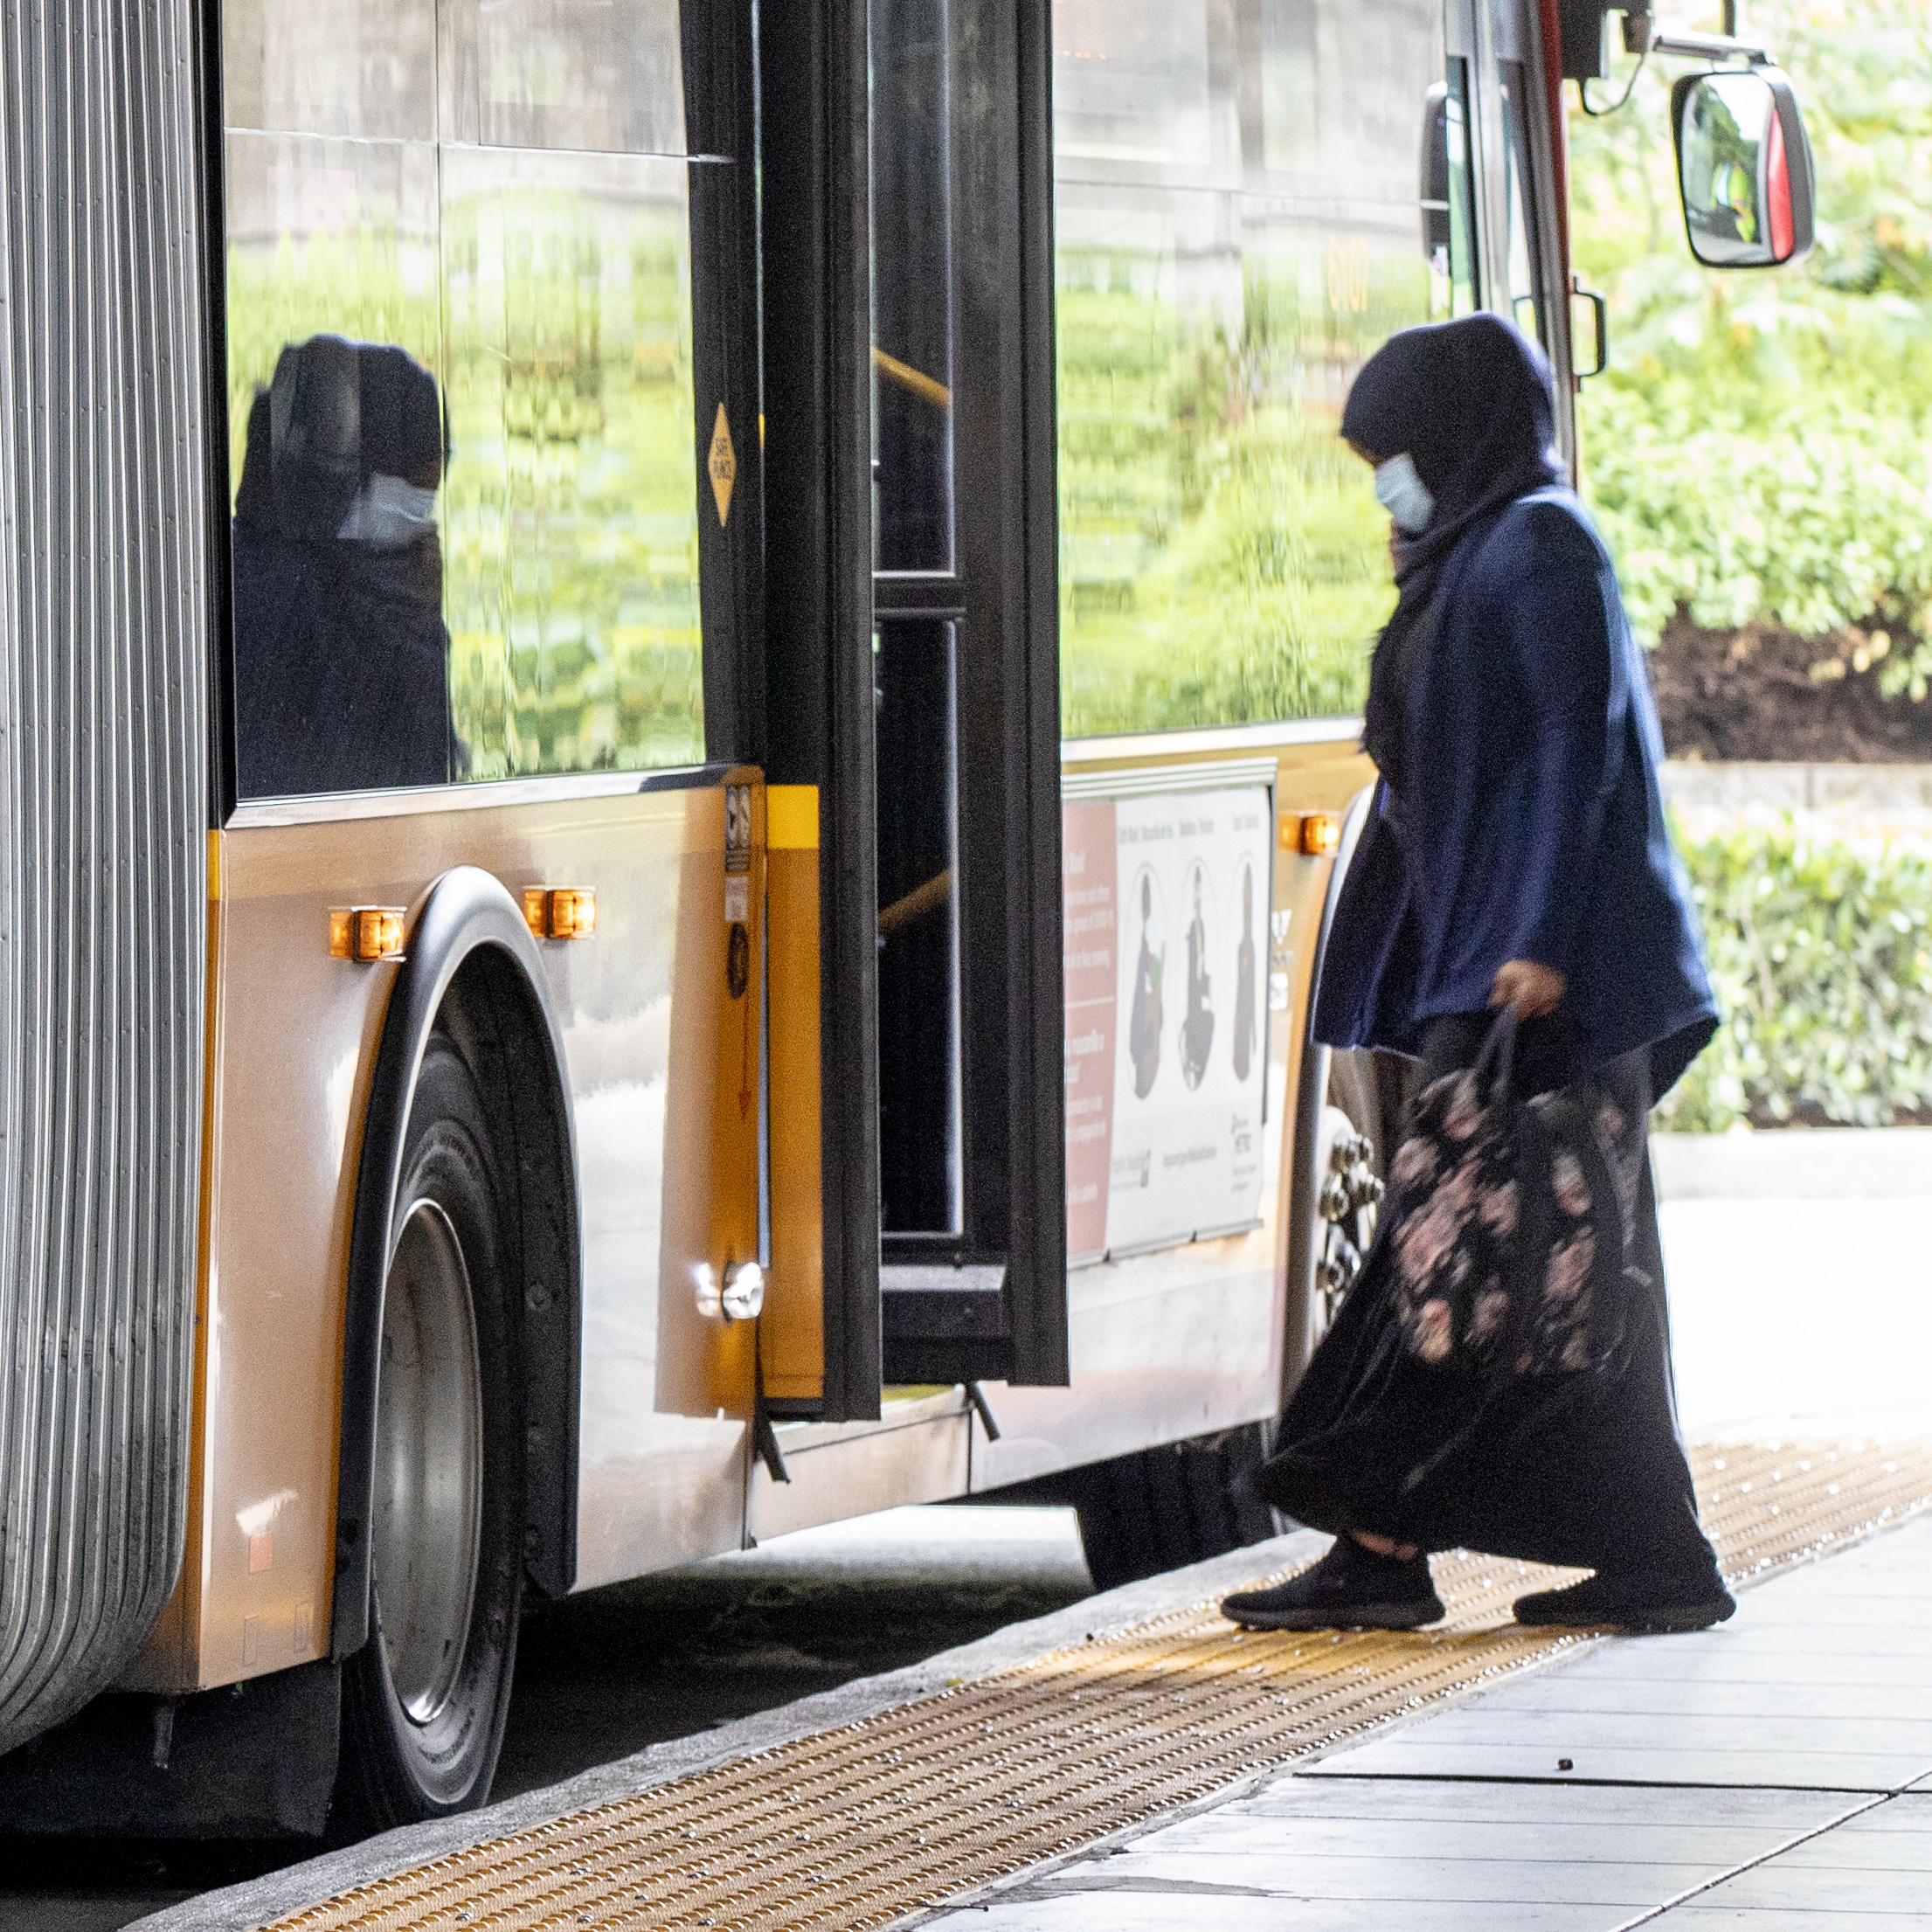 Sept 19 Service Change Options For Suspended Routes Metro Matters